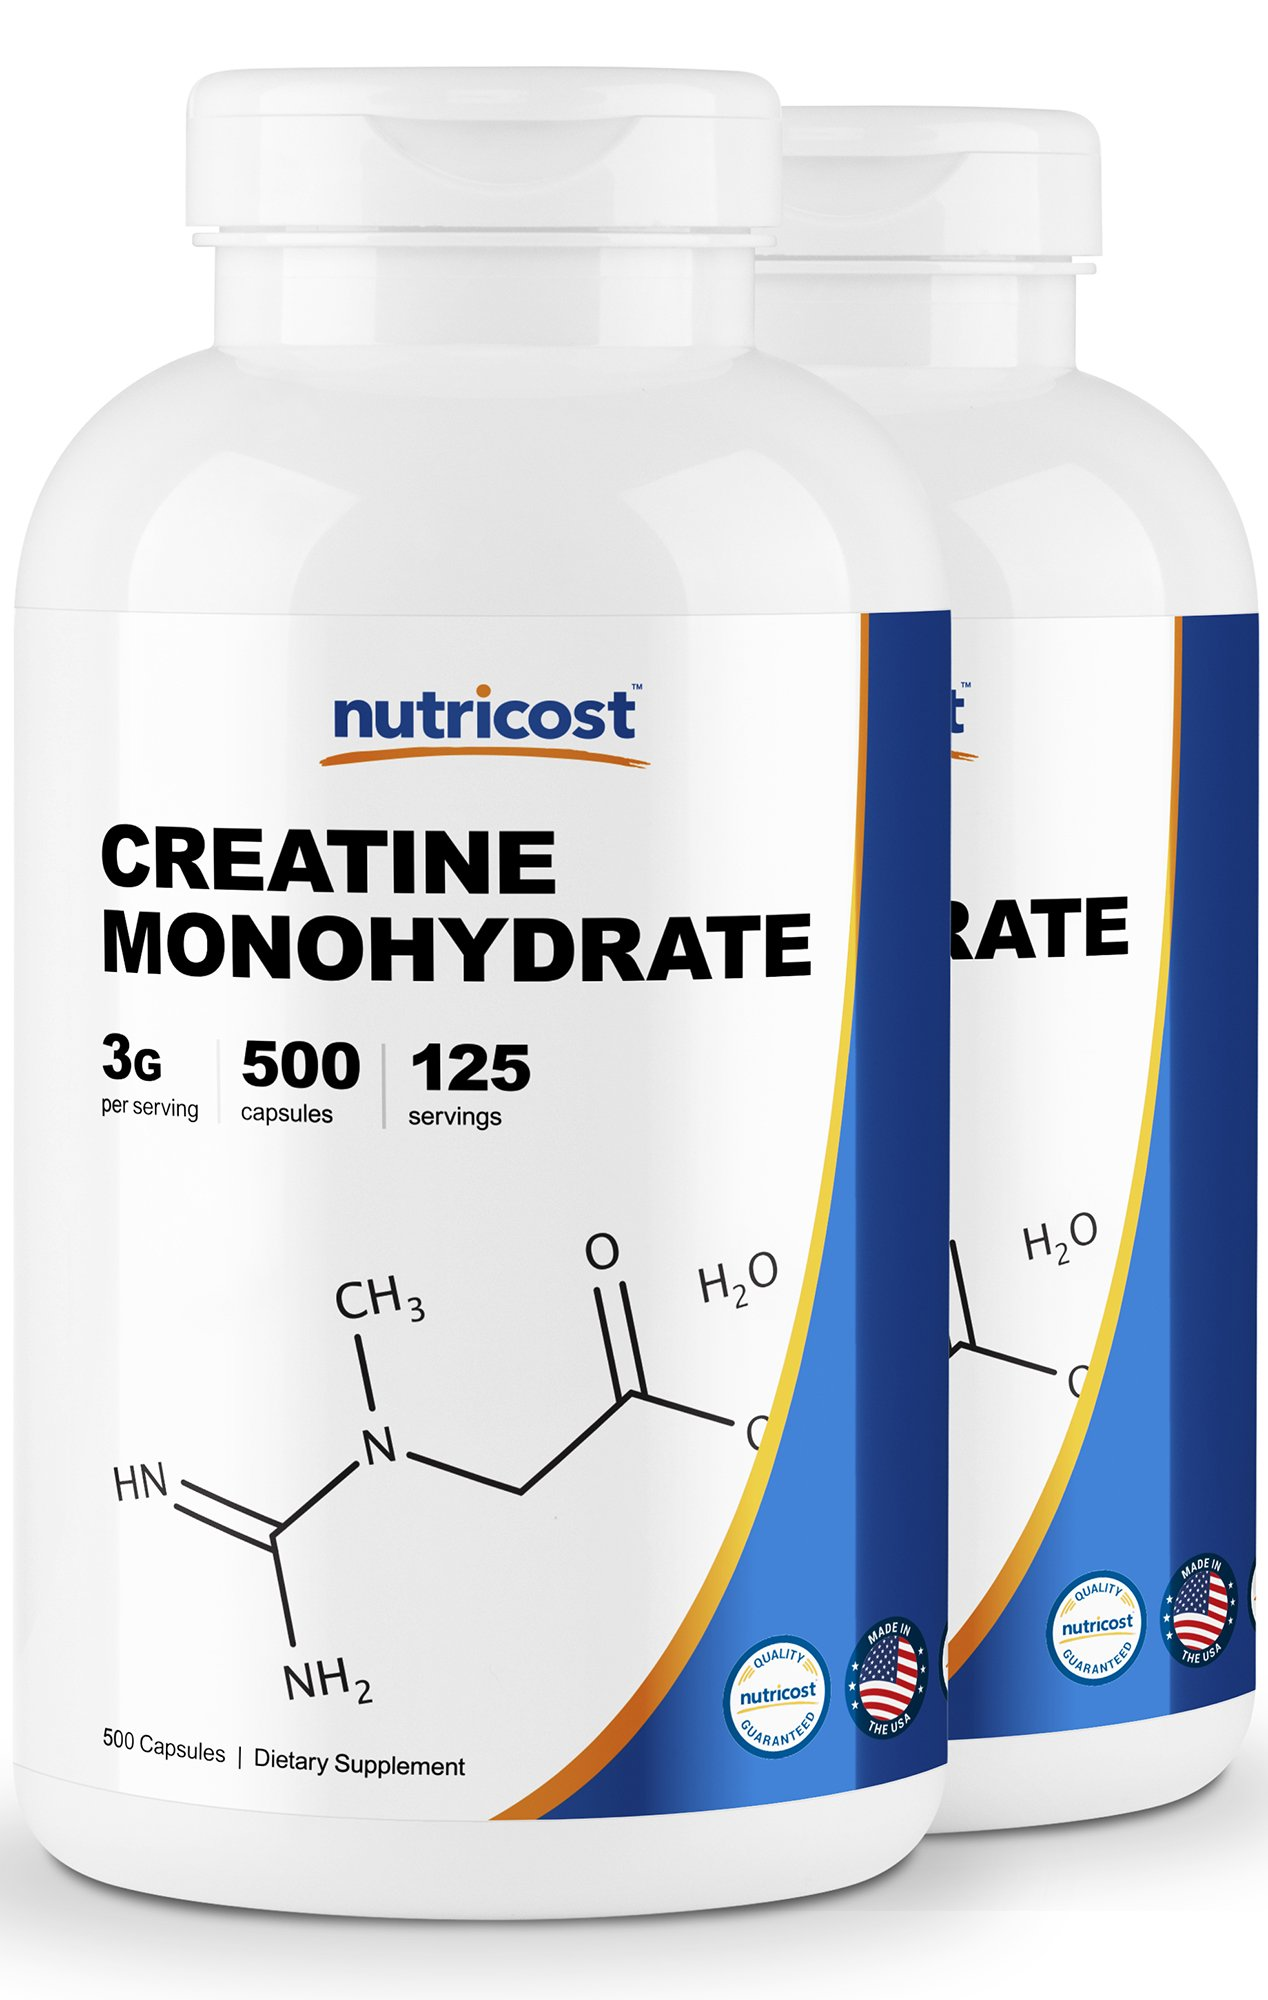 Nutricost Creatine Monohydrate 750mg, 500 Capsules (2 Bottles) by Nutricost